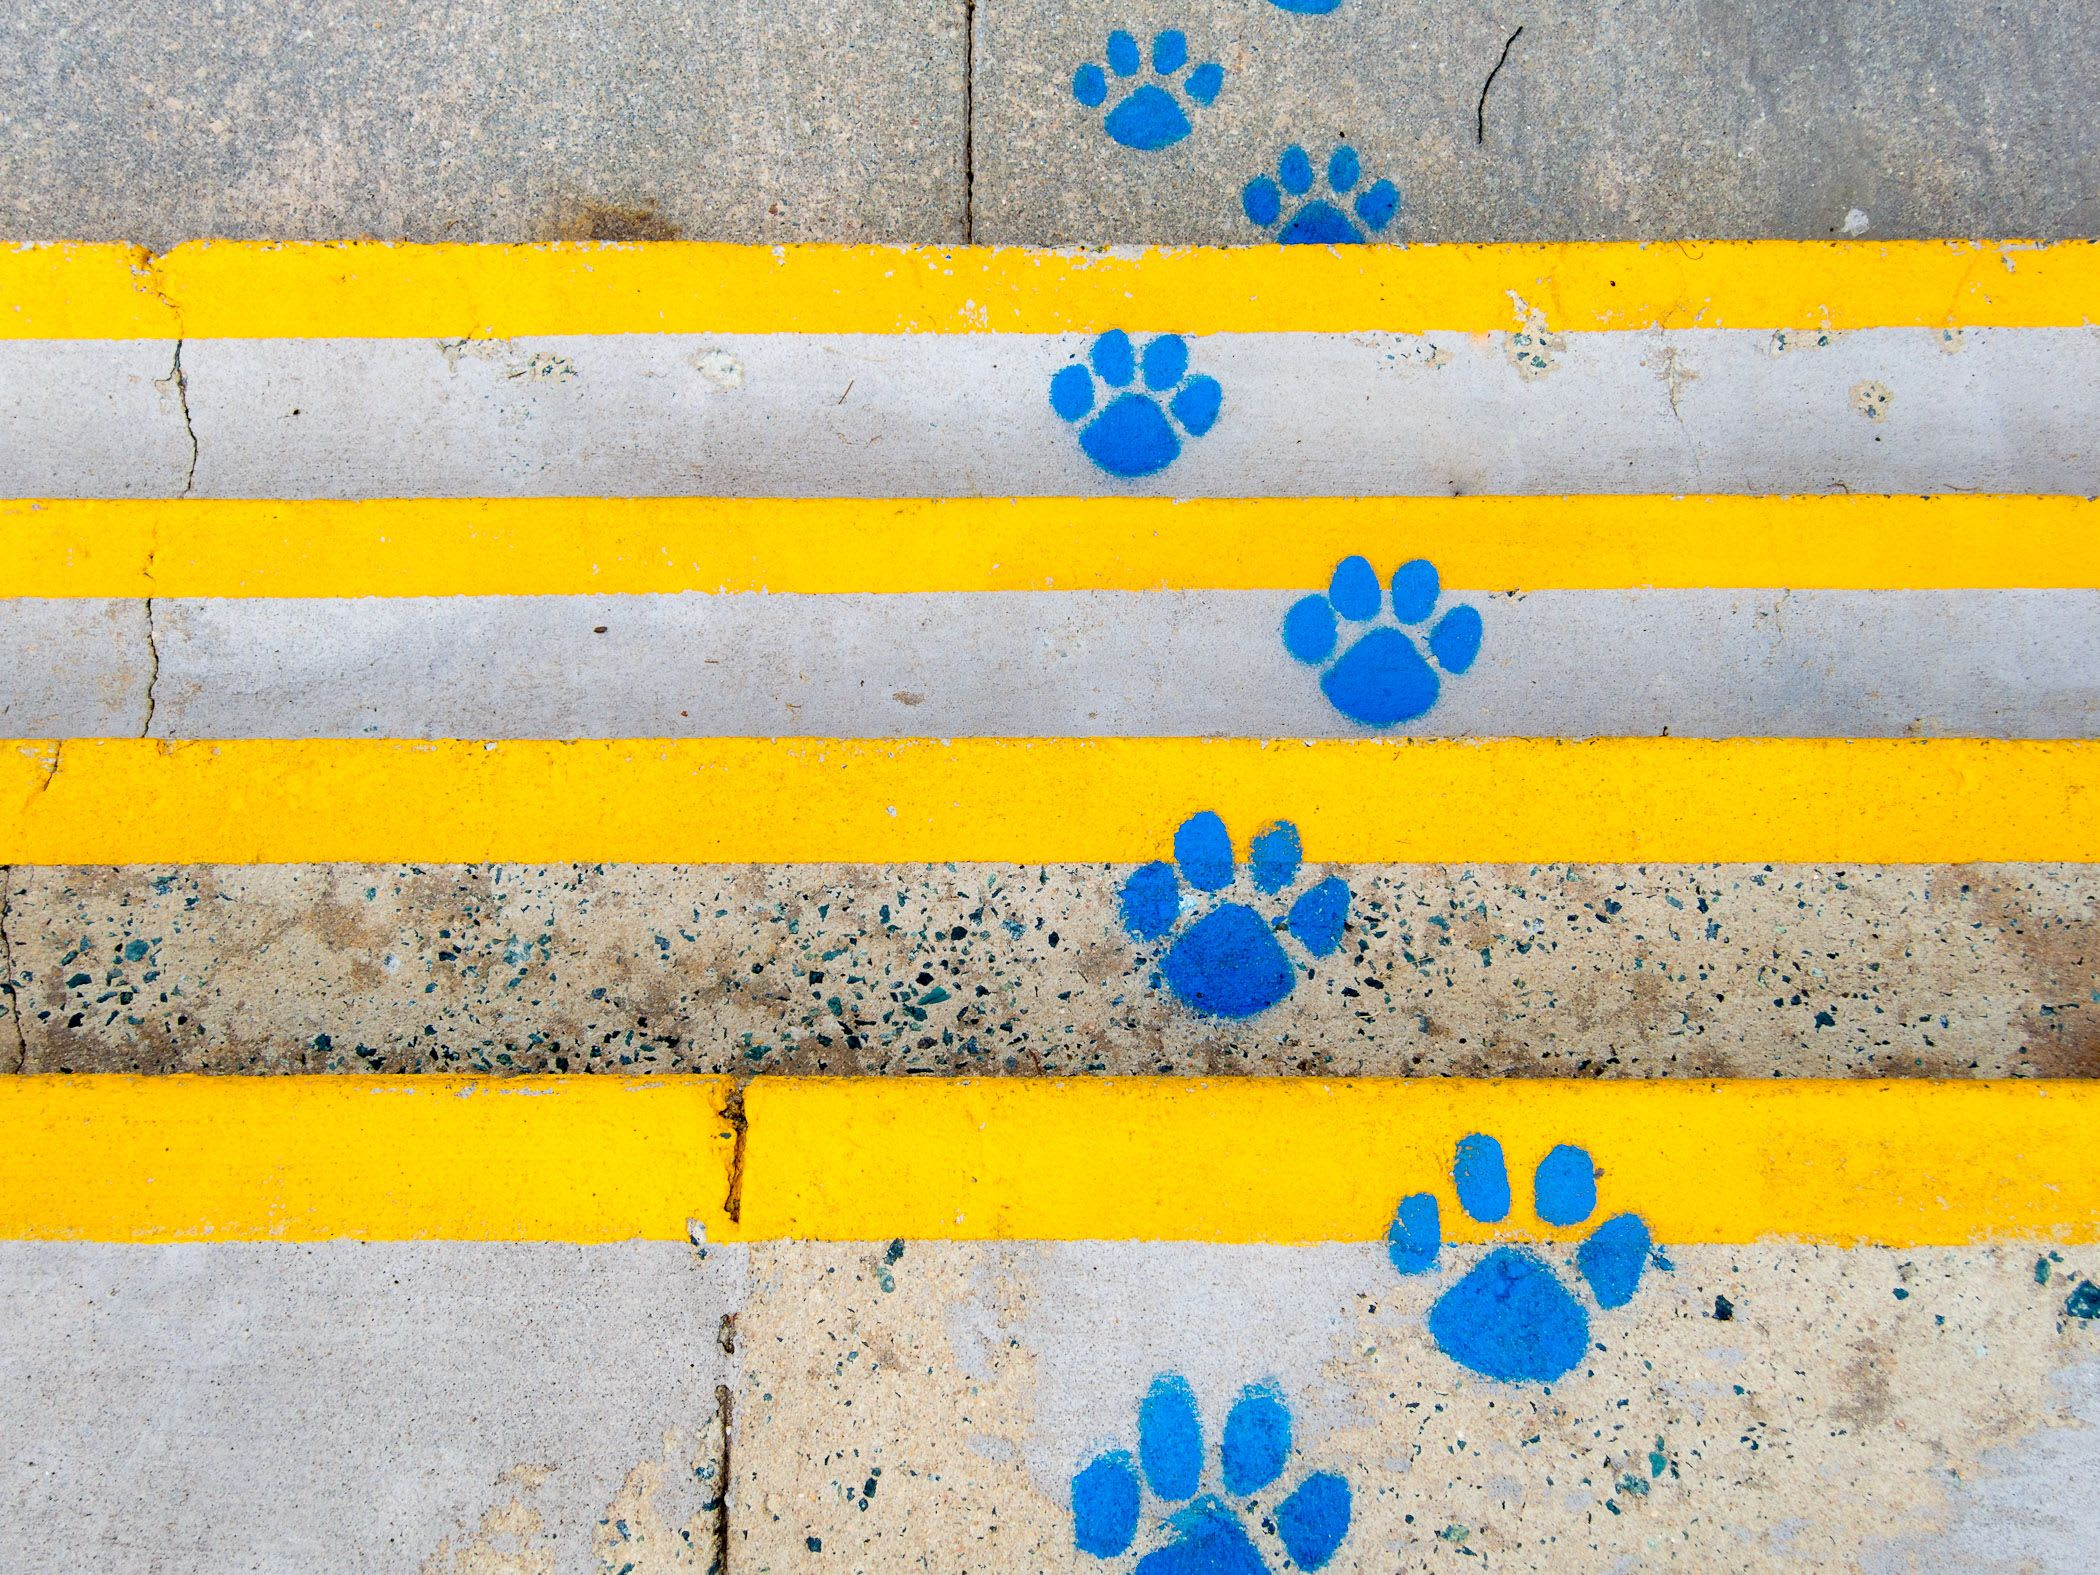 Yellow lines and blue pawprints